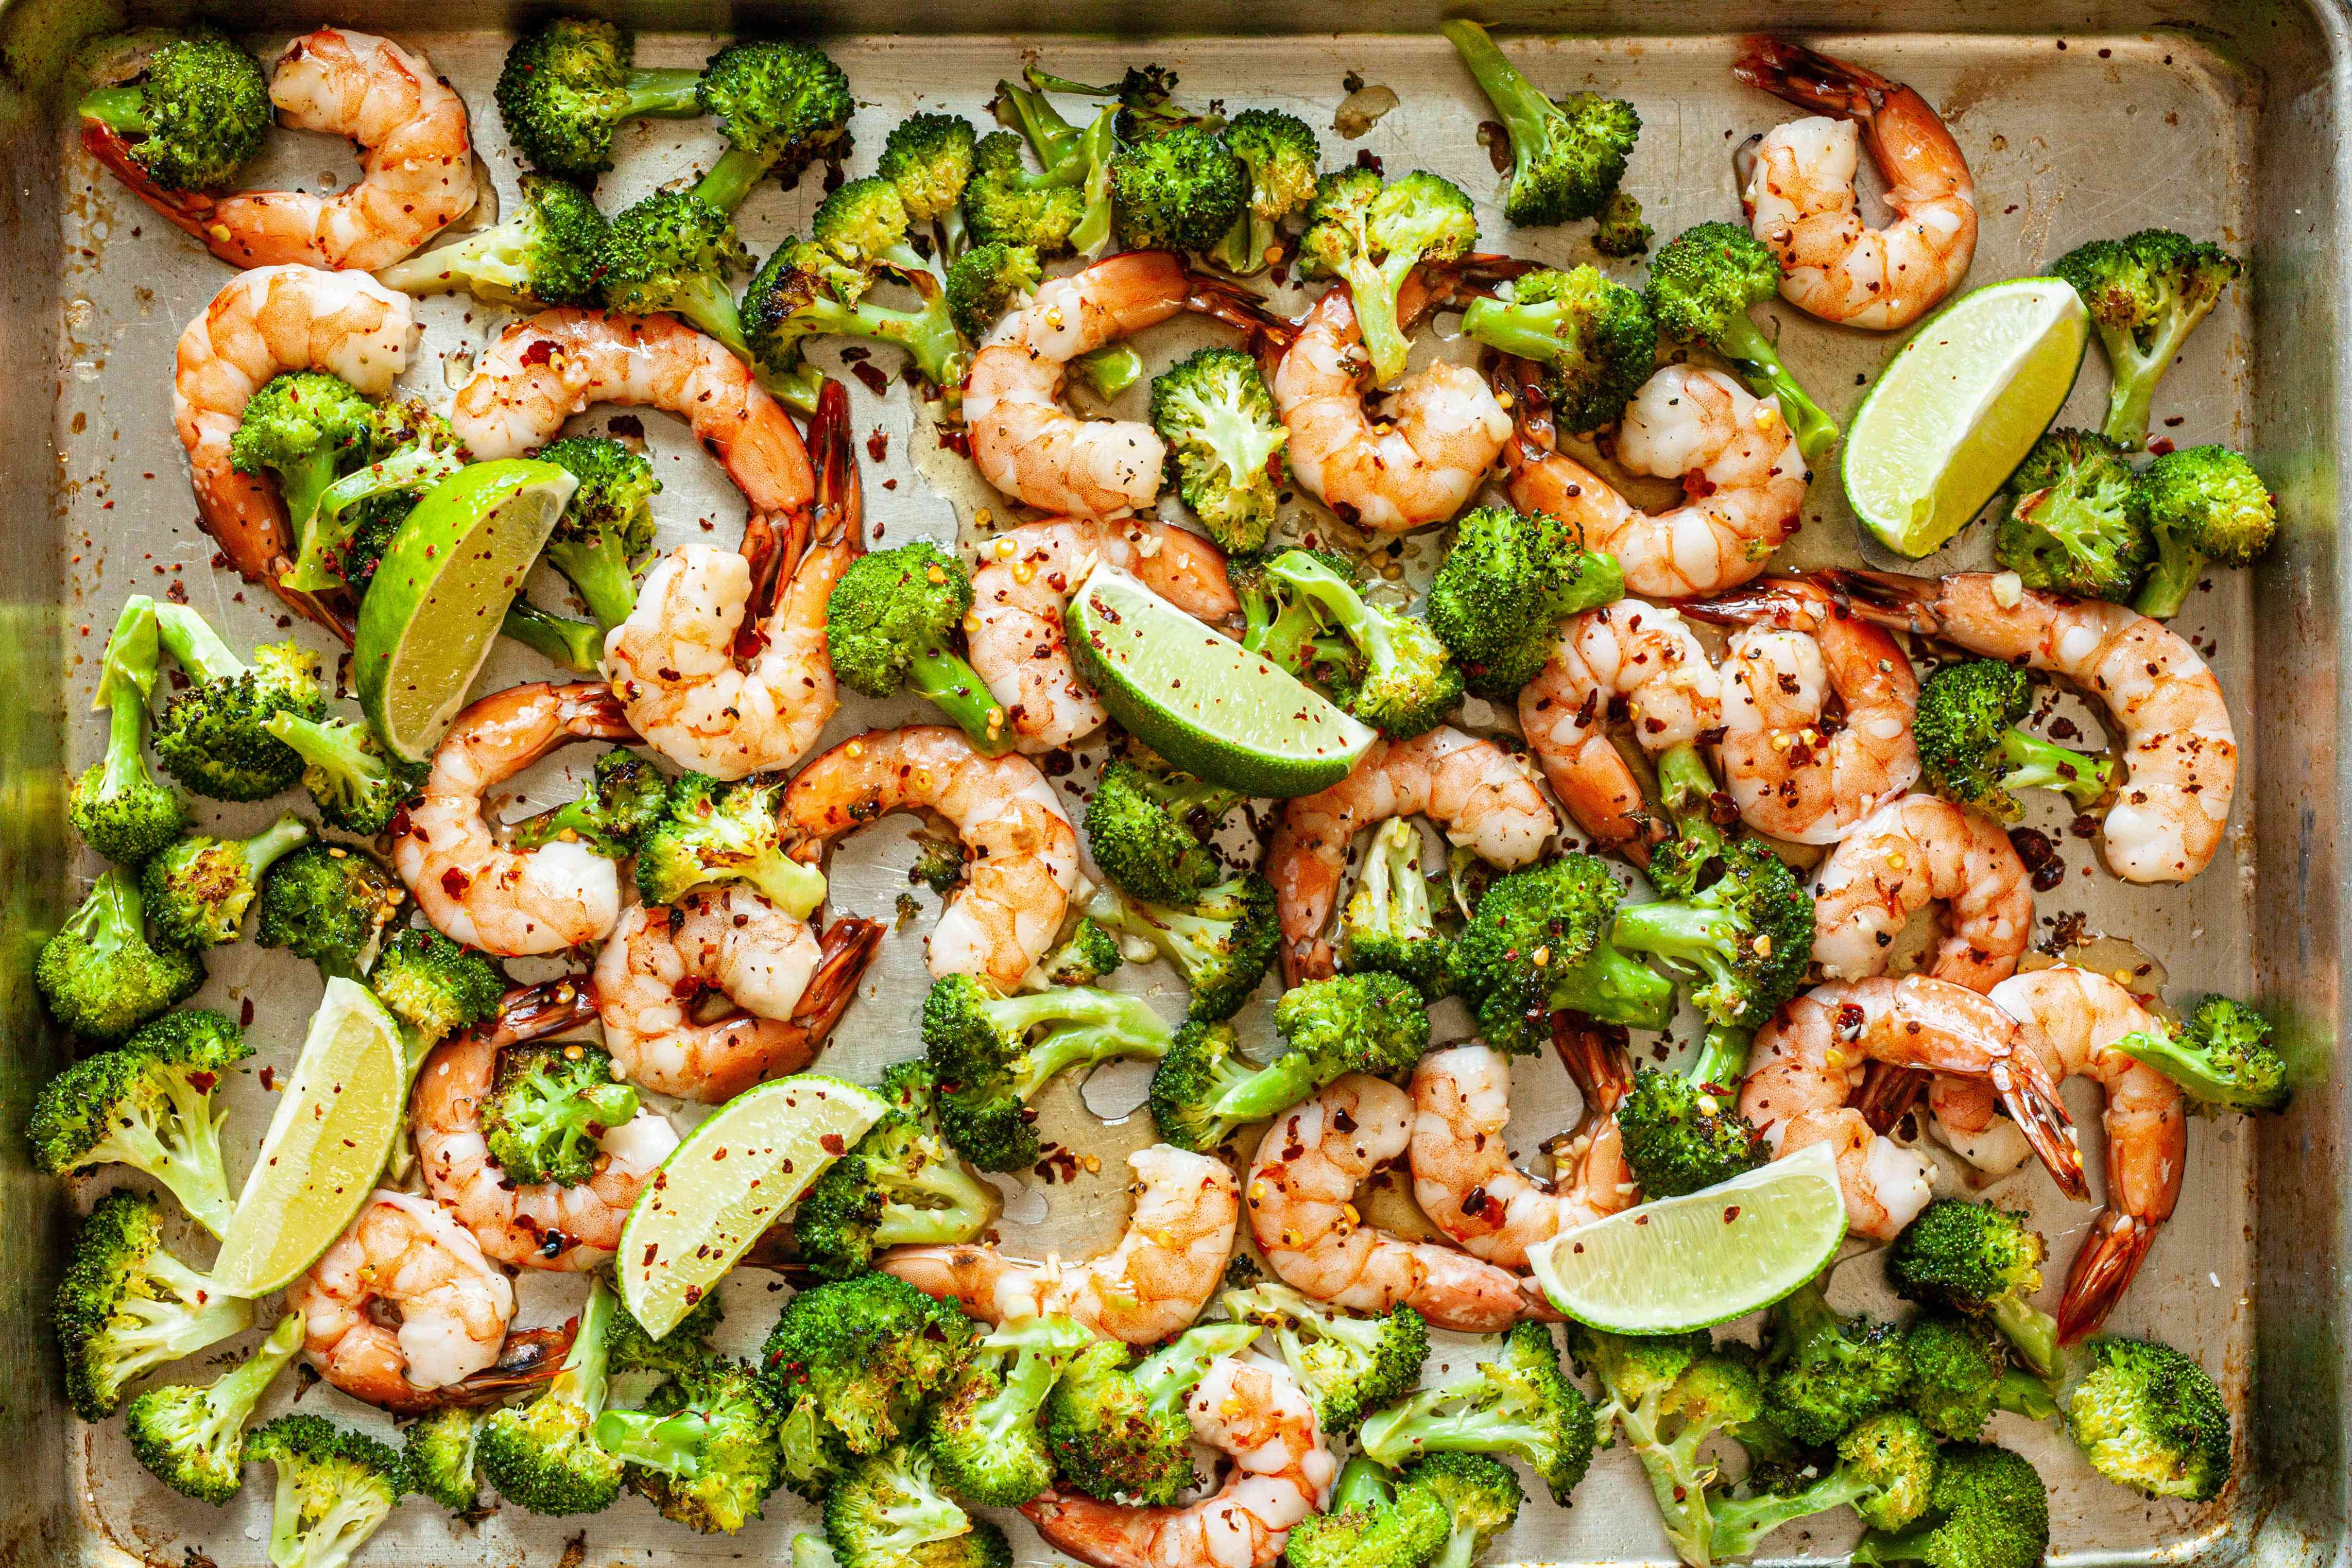 Sheet Pan Hot Honey Roasted Shrimp and Broccoli on sheet pan with limes.